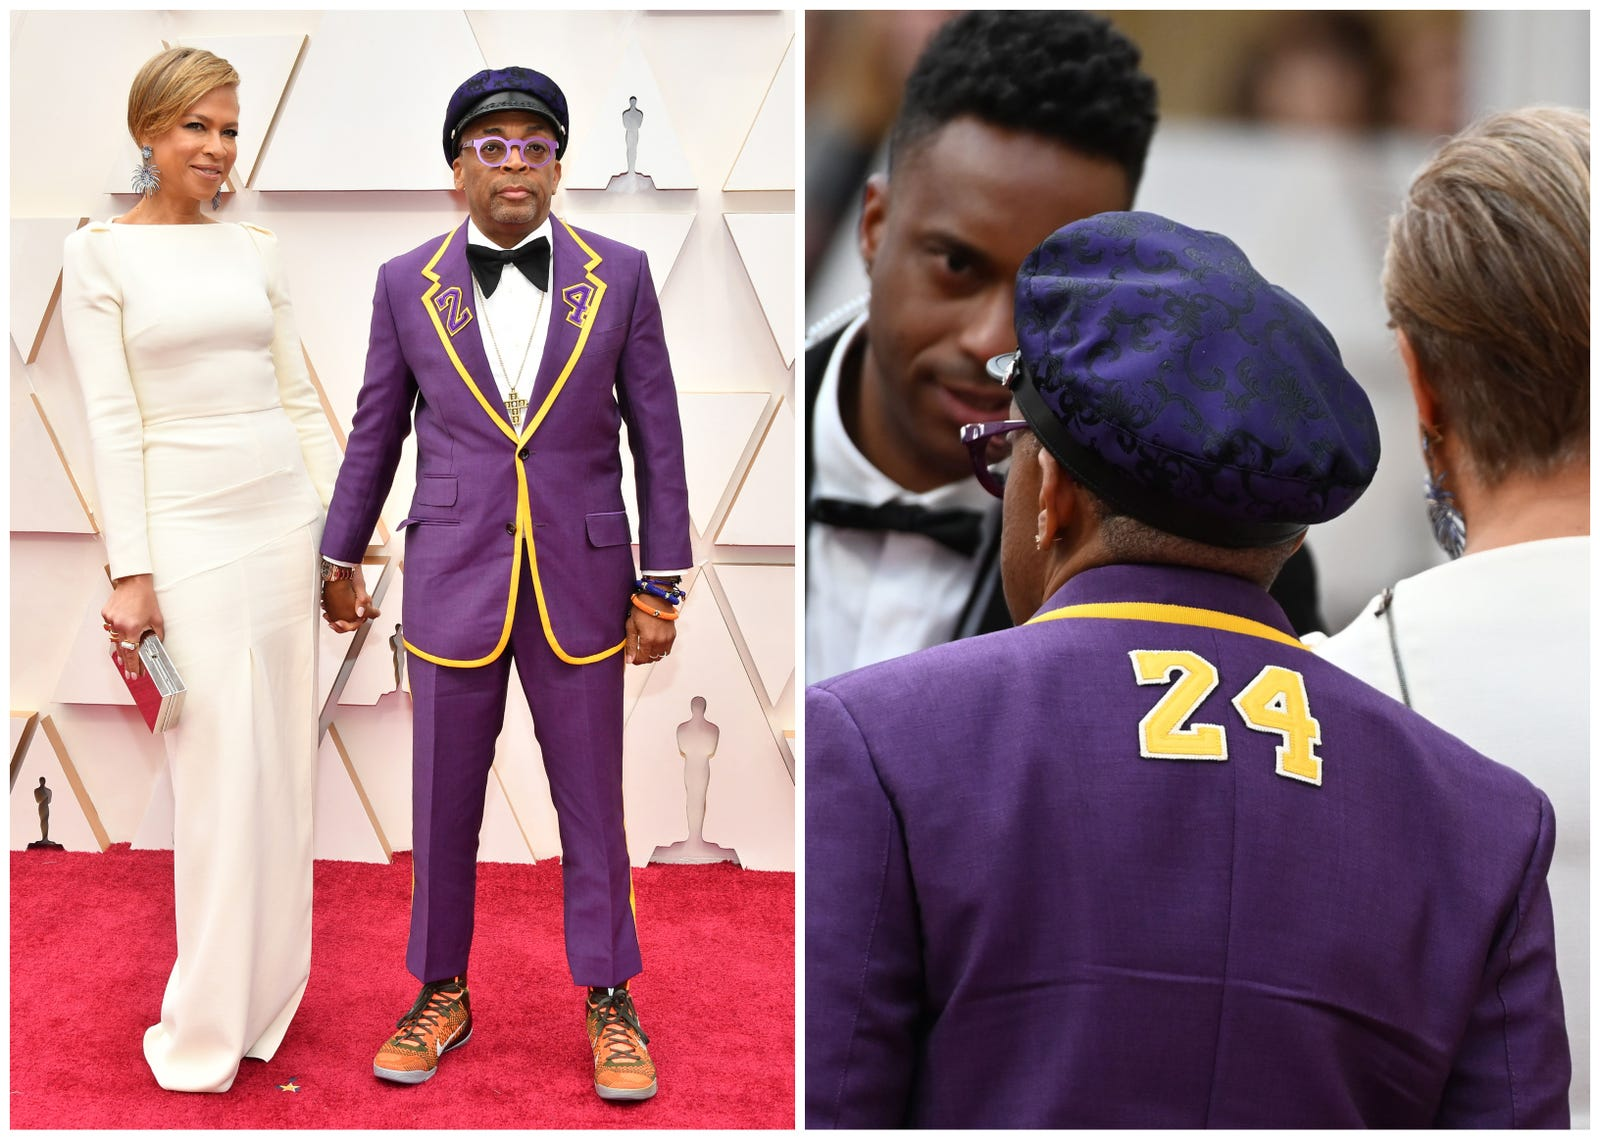 Spike Lee arrives with wife Tonya Lewis Lee, wearing the number 24 on his jacket in remembrance of late NBA legend Kobe Bryant